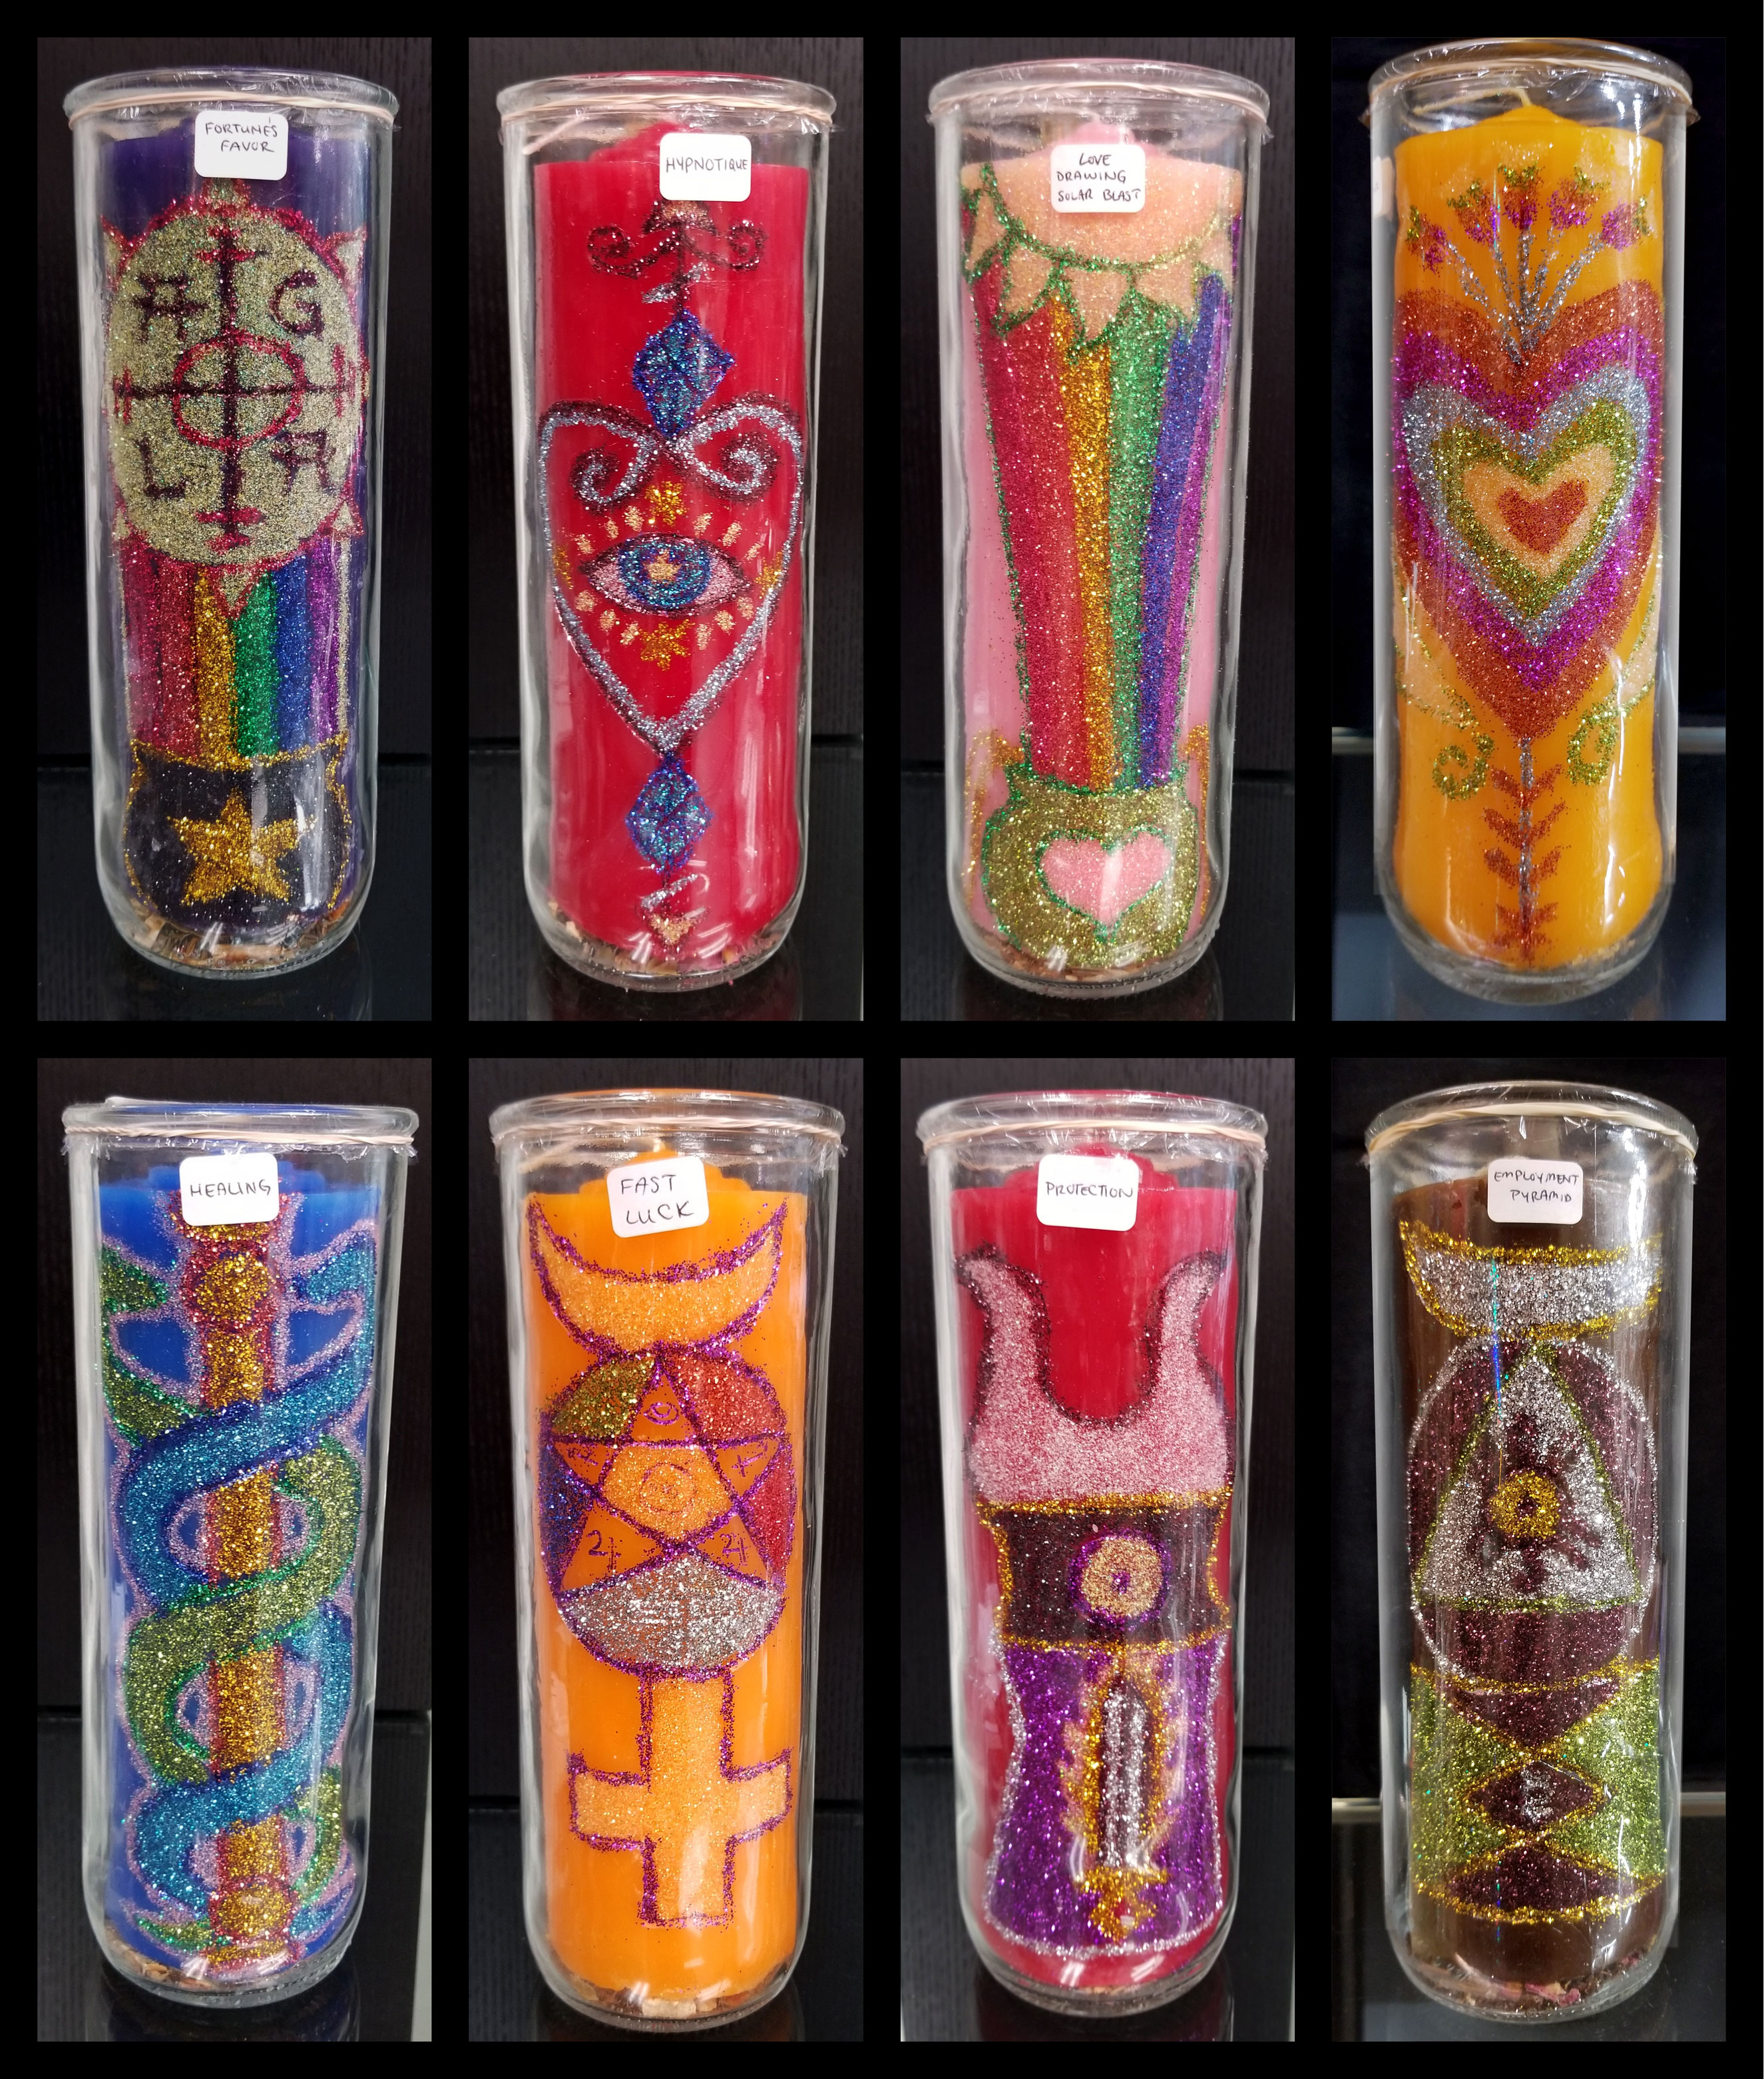 Fortune's Favor, Hypnotique, Love Drawing Solar Blast, Love's Messenger, Healing, Fast Luck, Protection, and Employment Pyramid Enchanted Candles